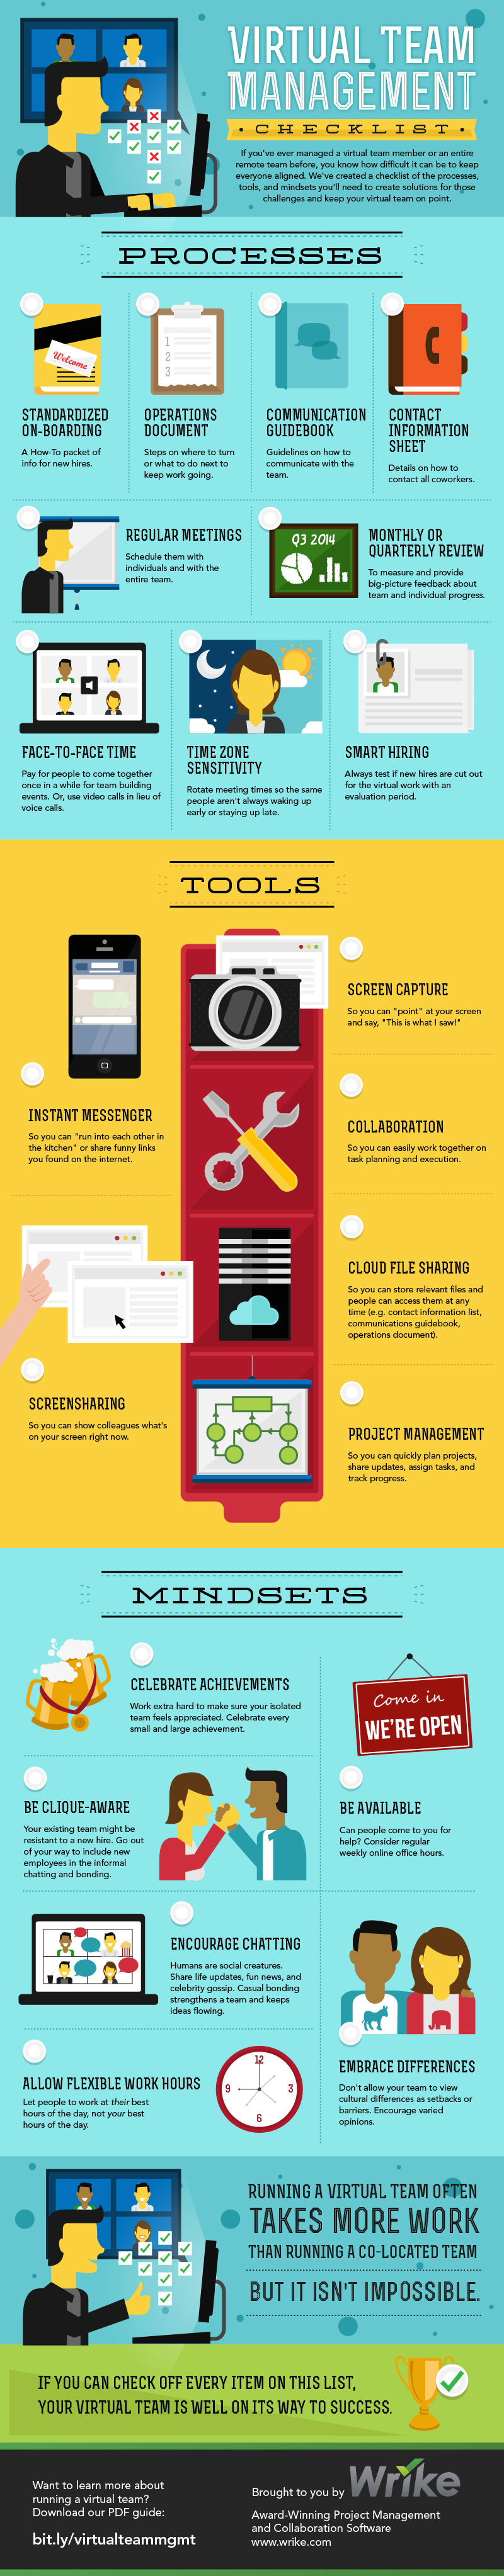 Go through our Virtual Team Management Checklist to see what your virtual team is missing! #infographic